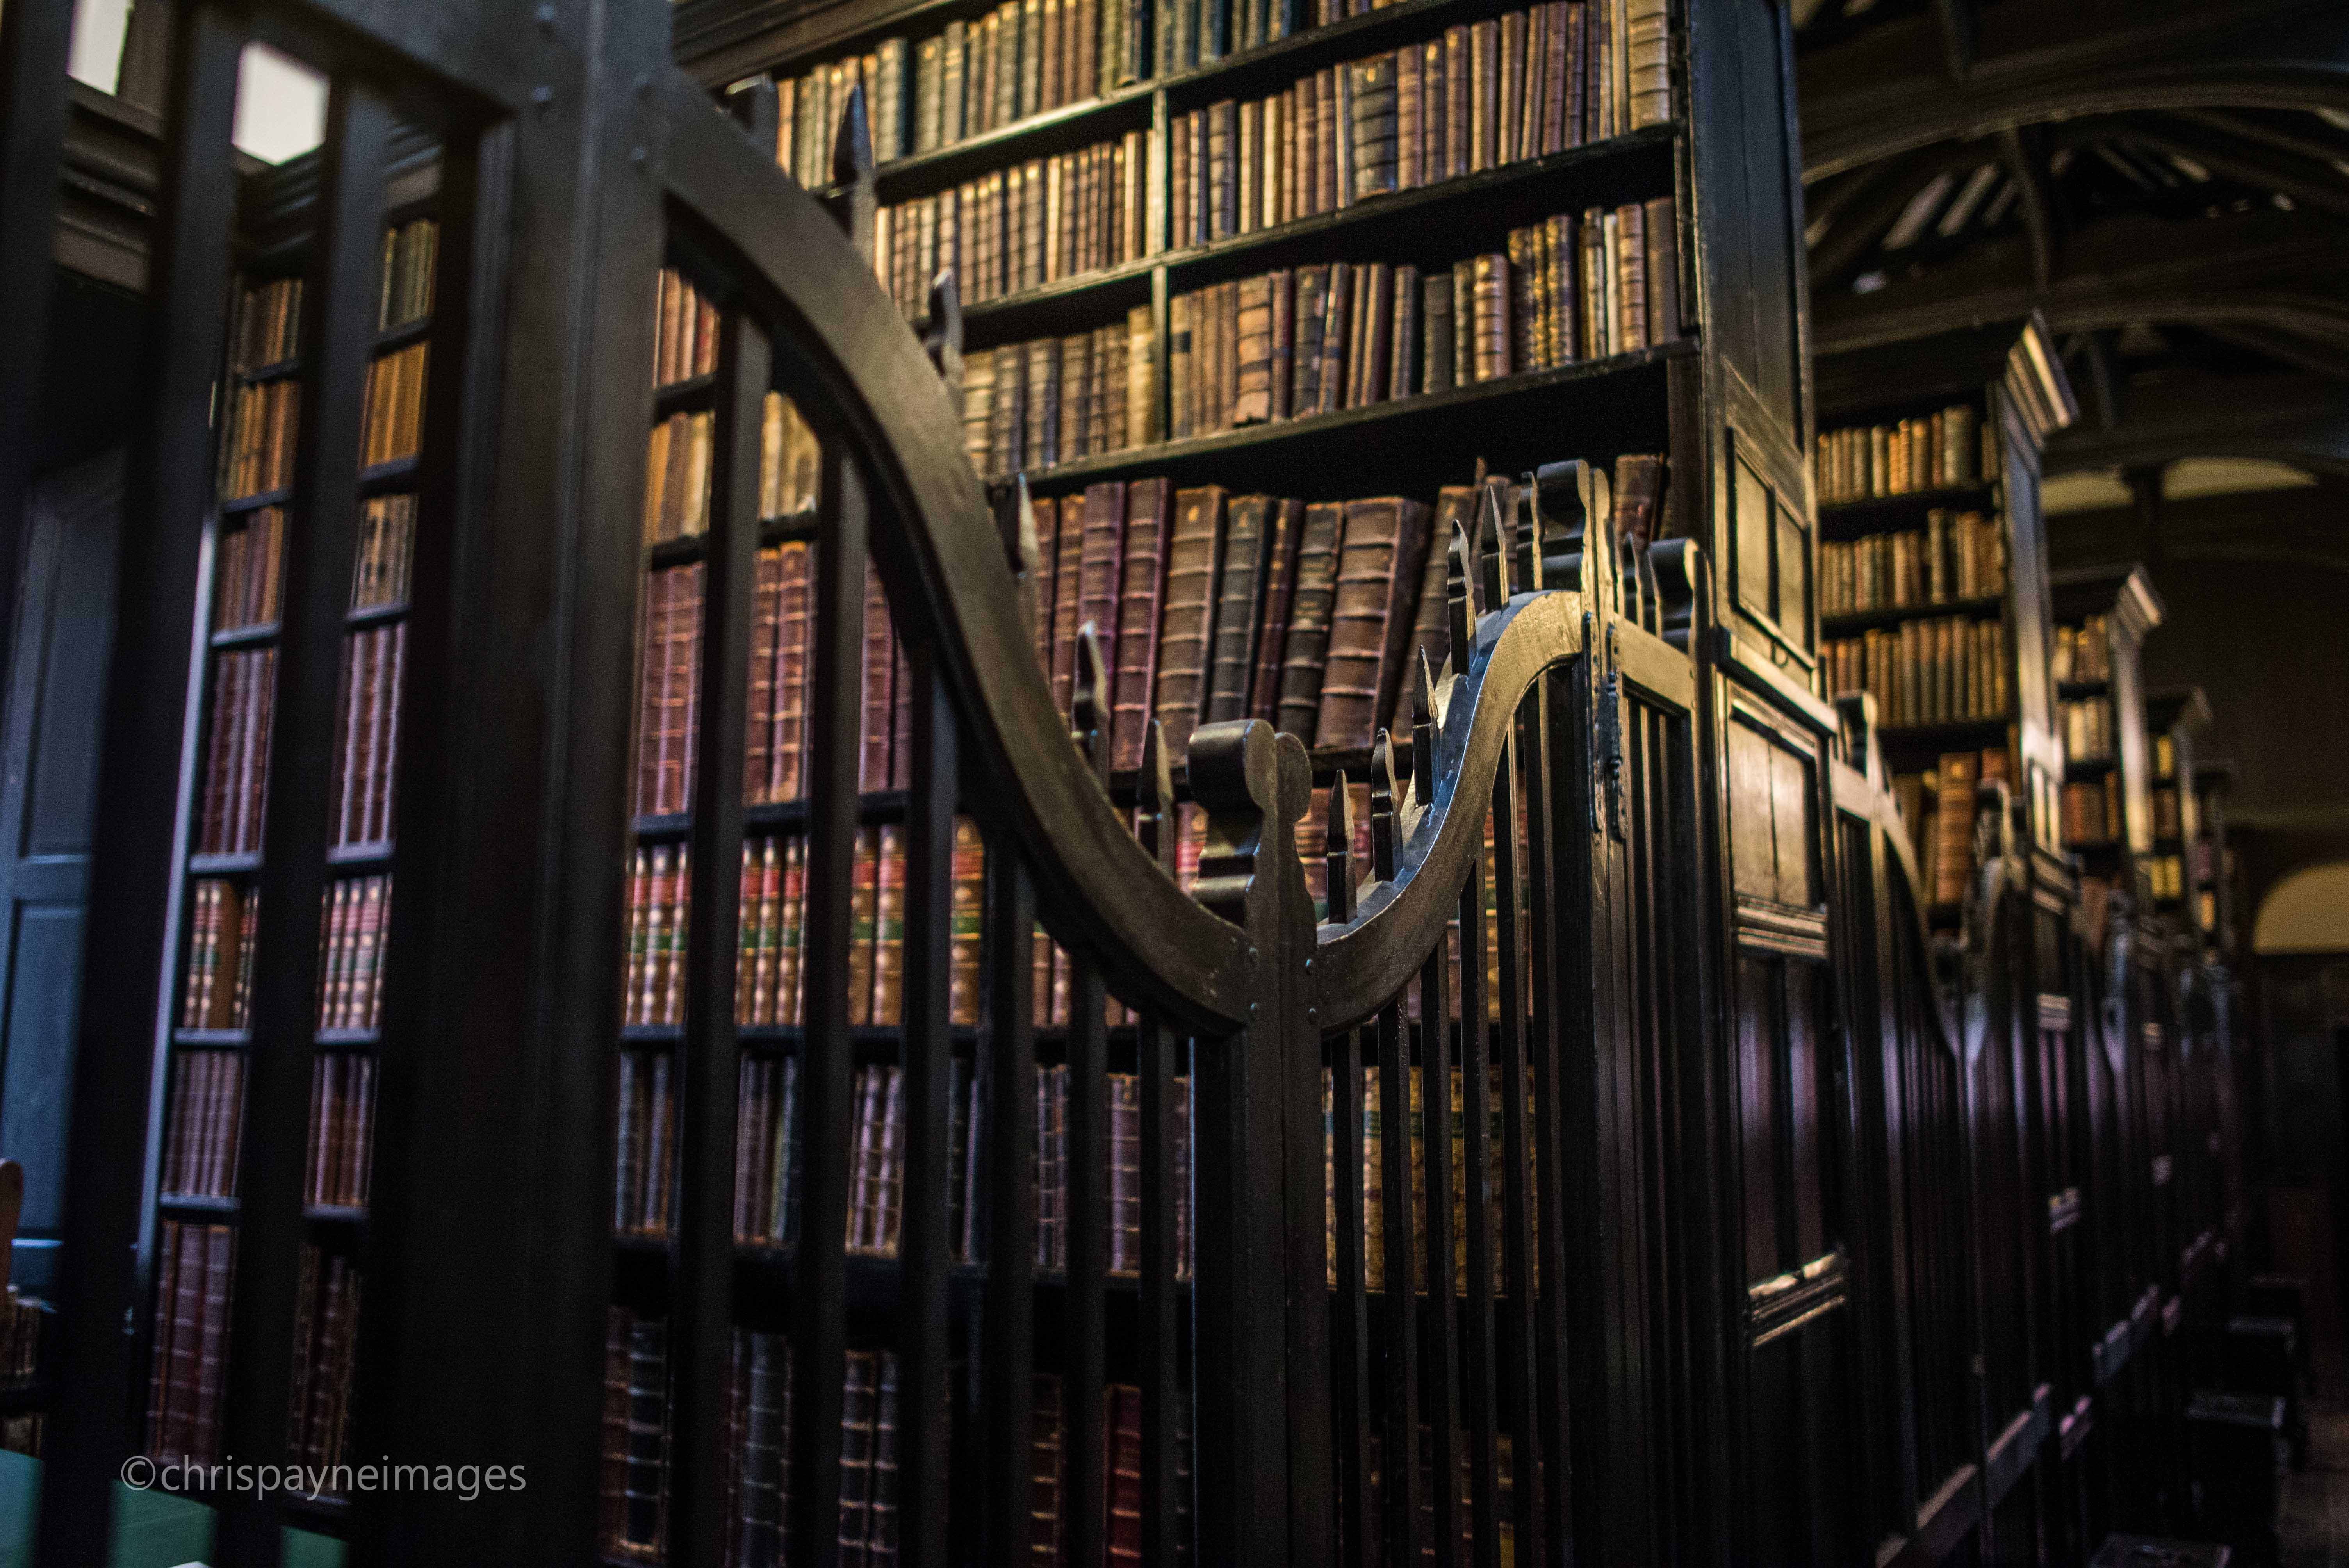 Northern Soul Chethams Library a medieval gem in a modern city